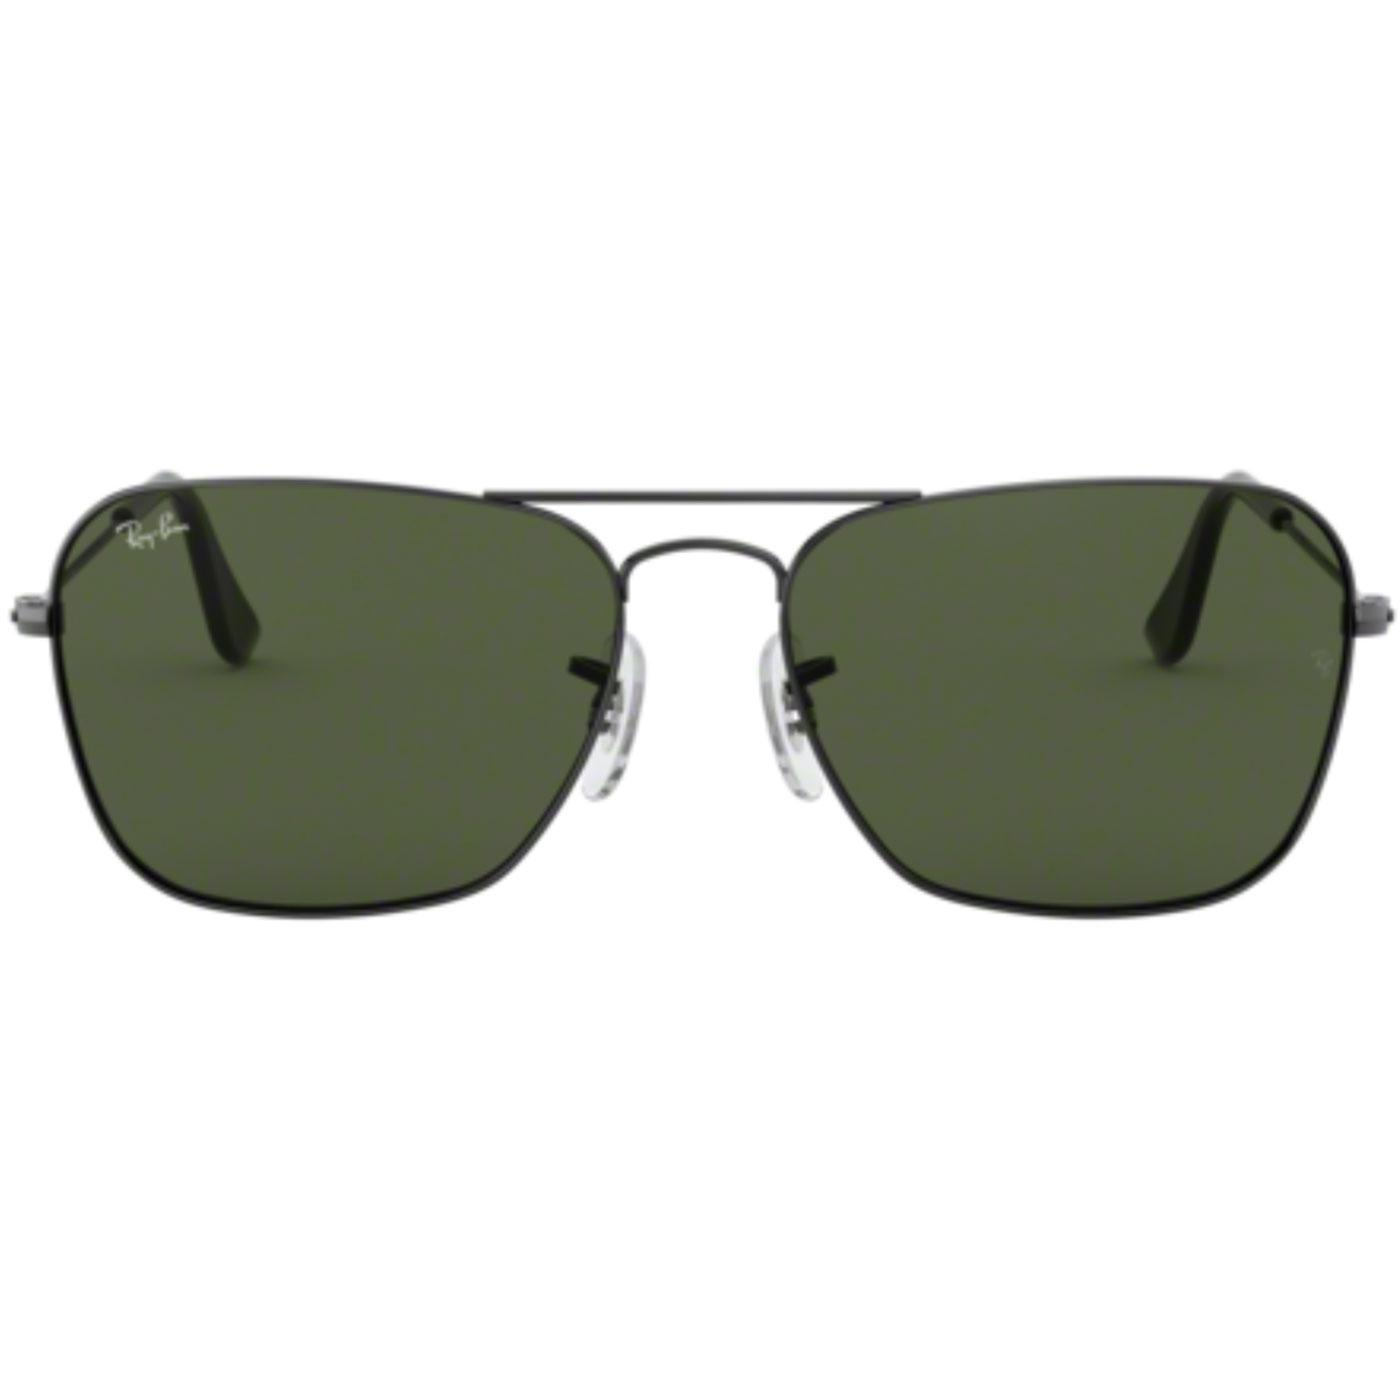 2923e3929d Ray-Ban Caravan Retro Mod Sunglasses in Gunmetal Green 0RB3136